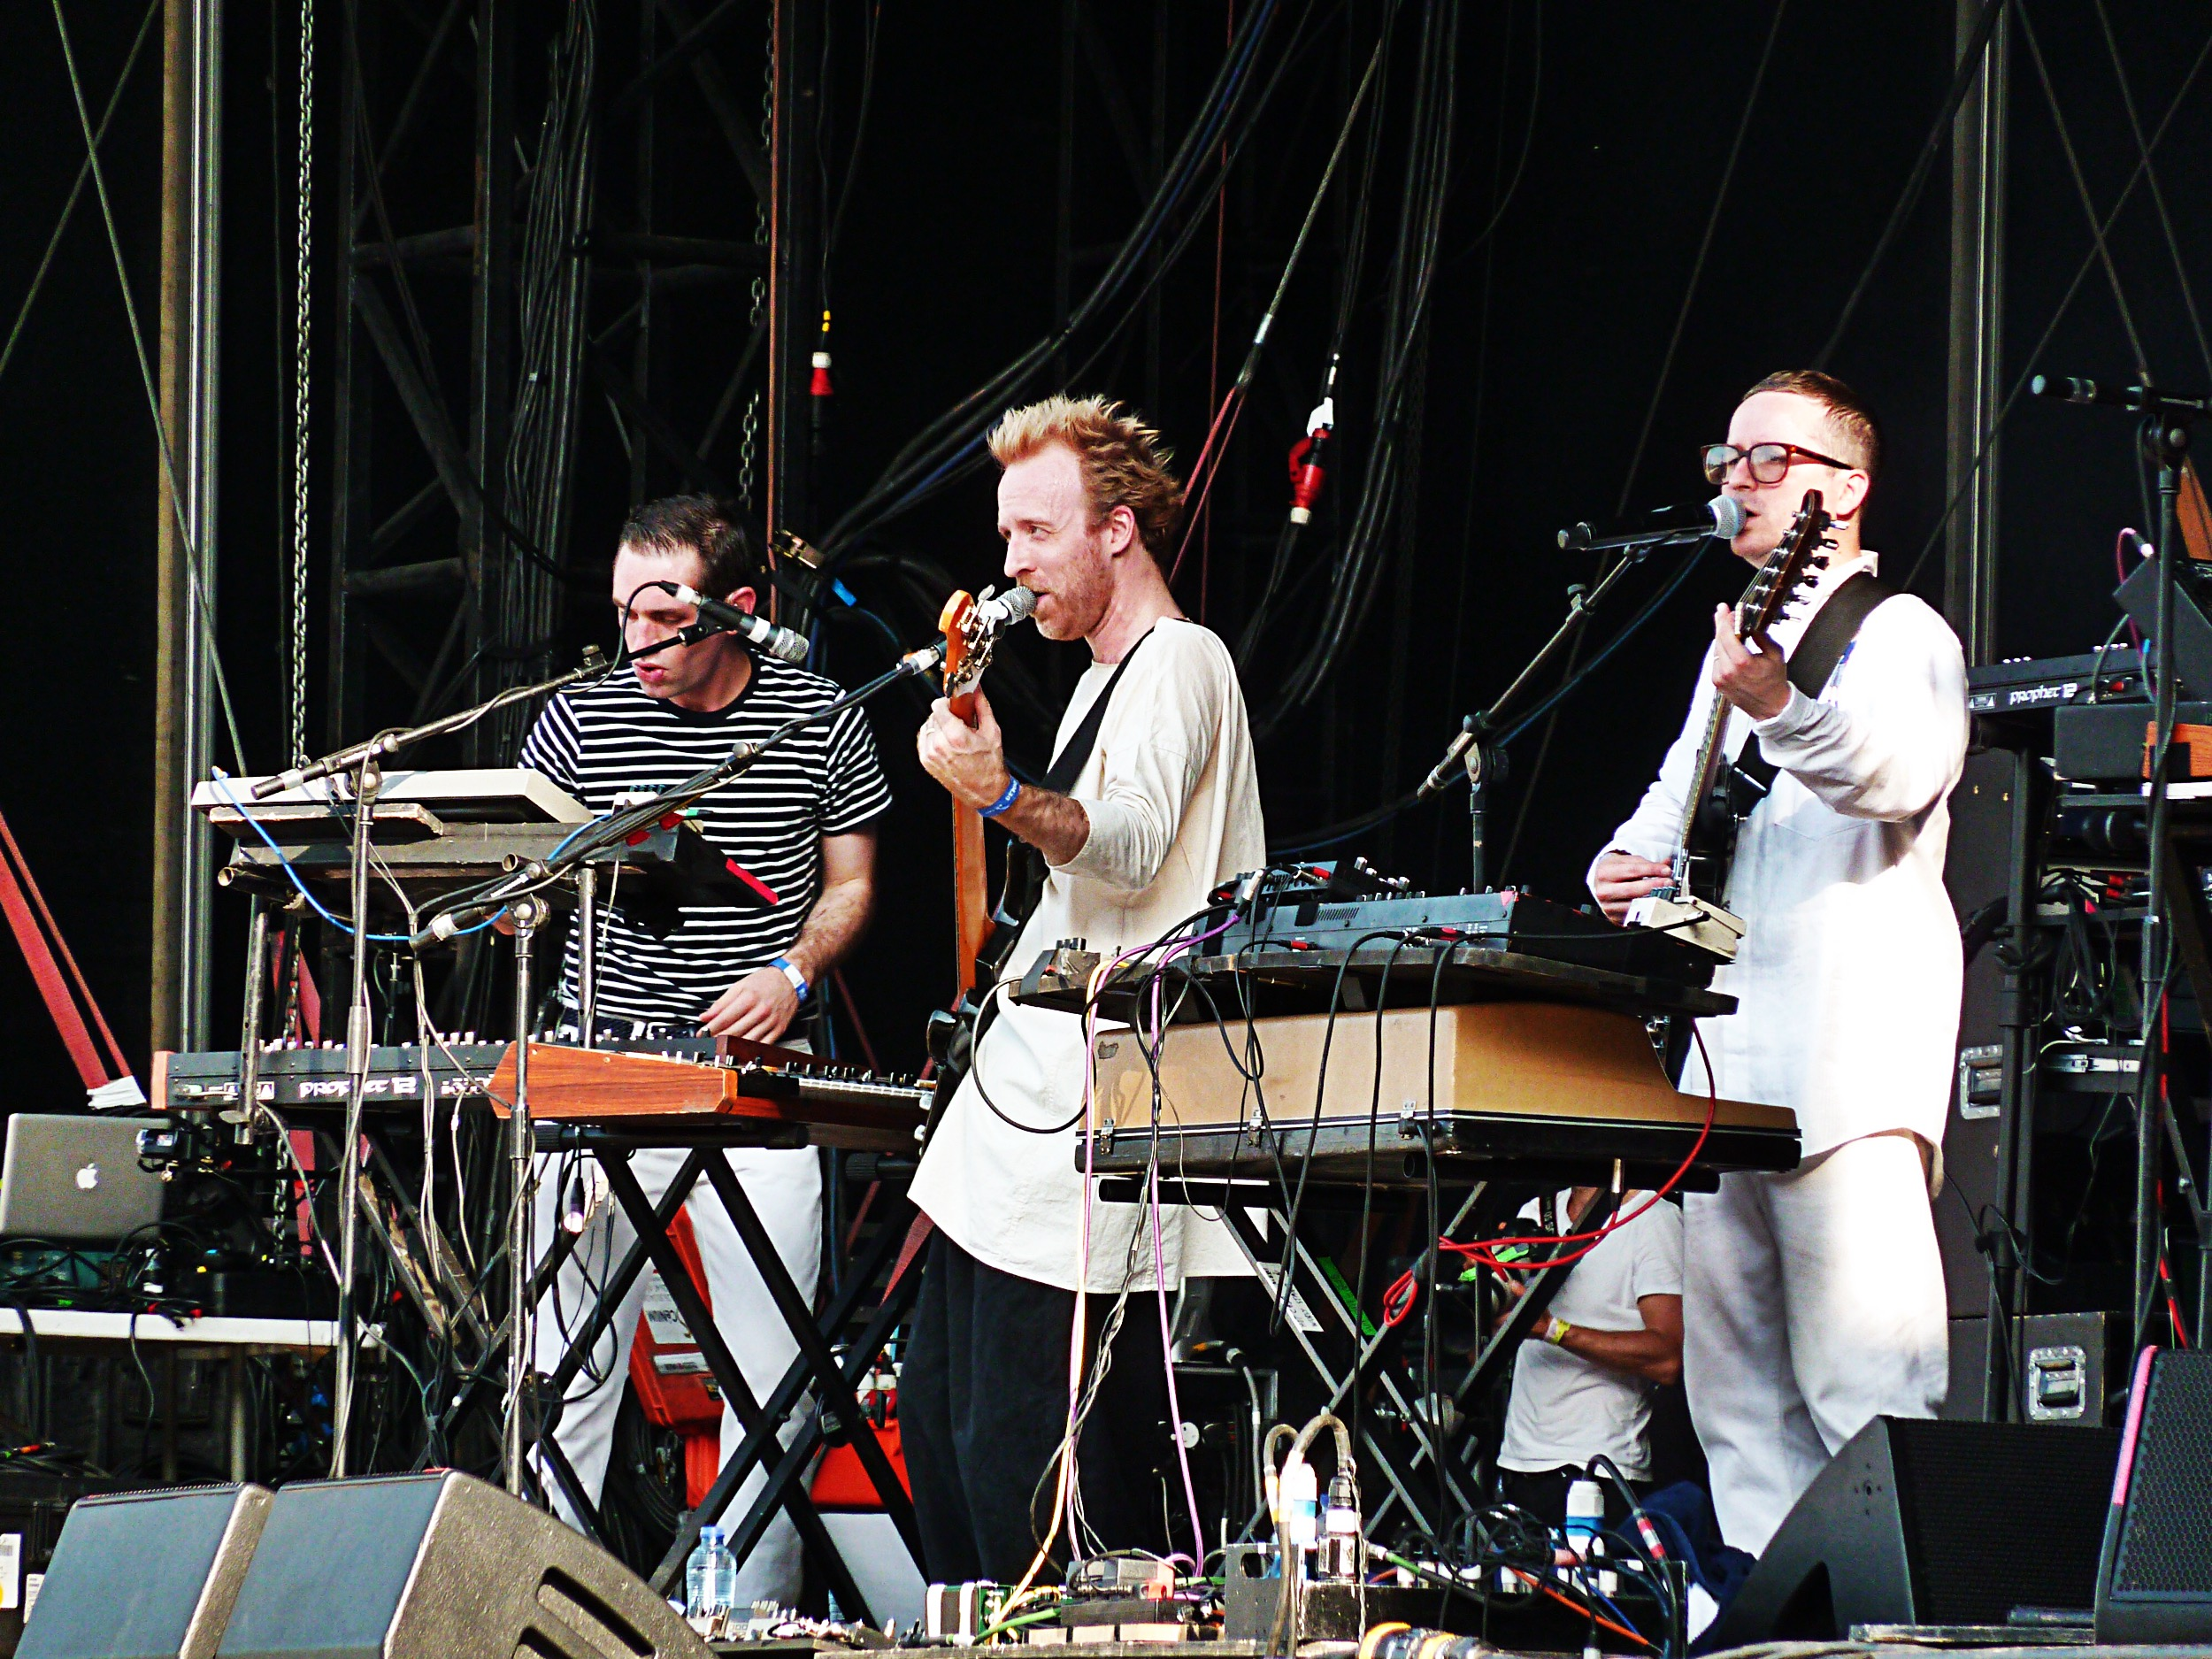 Hot Chip music band live Rock en Seine 2015 festival france concert Owen Clarcke Felix Martin Alexis Taylor stage photo by united states of paris blog